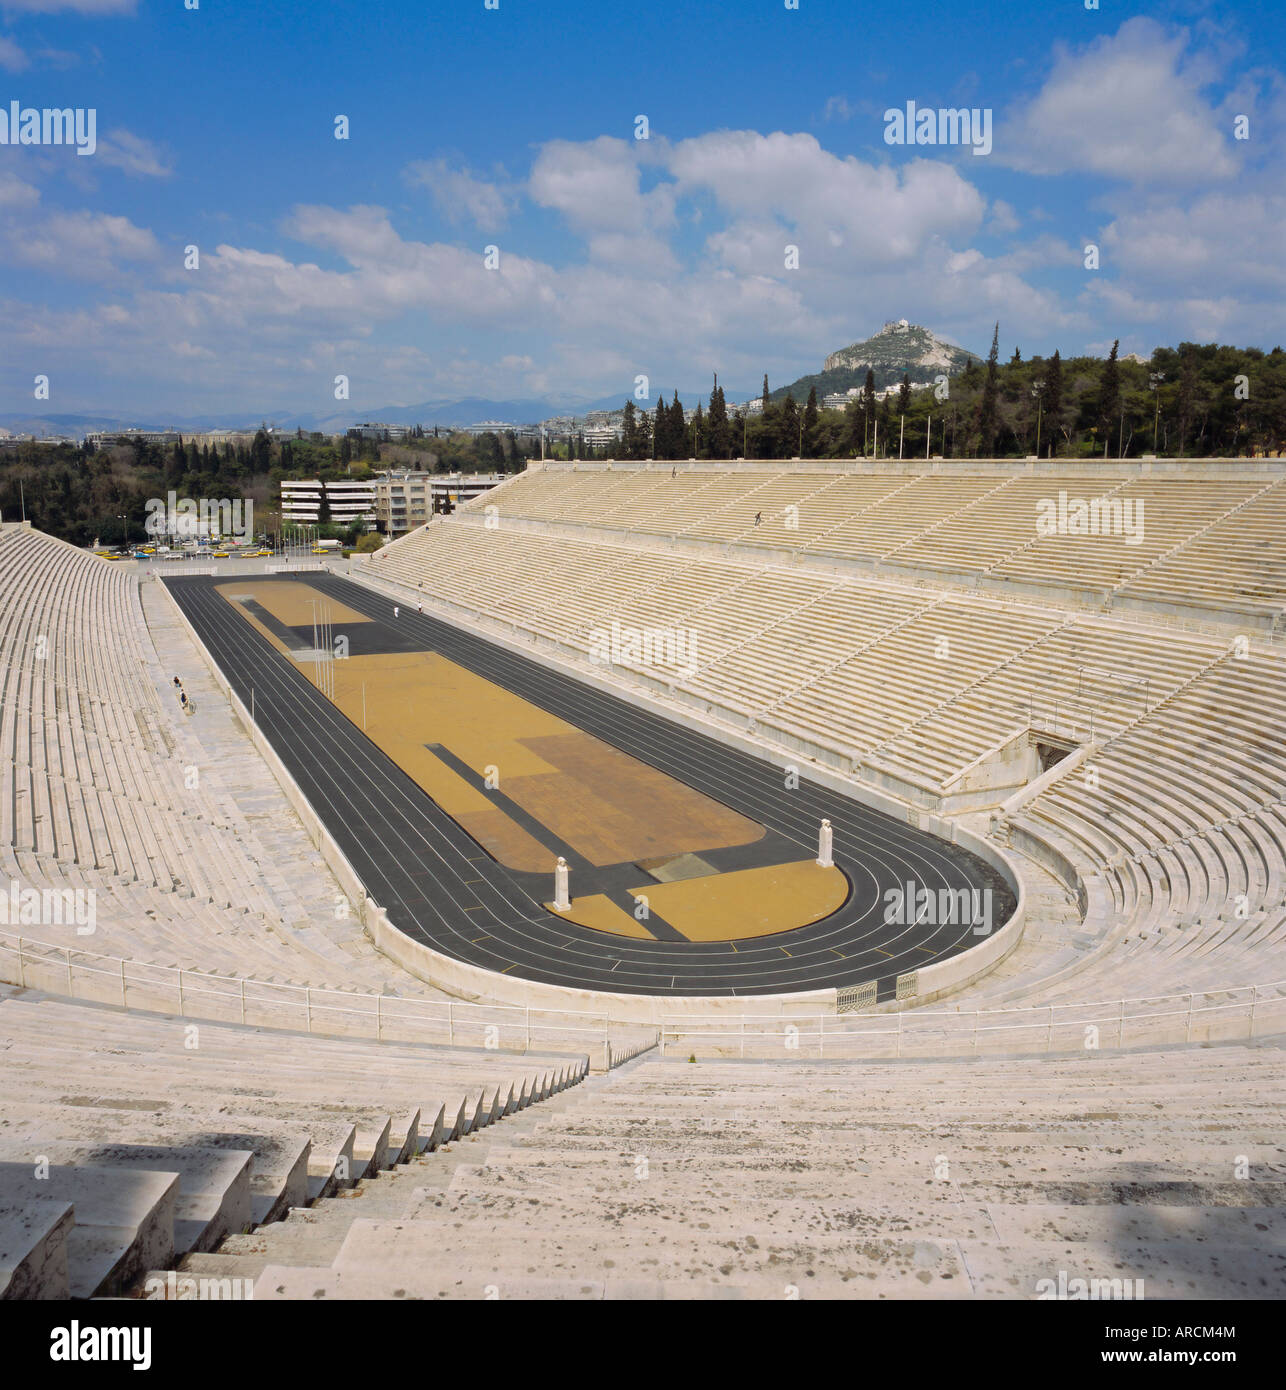 The Stadion, c. 330 BC, restored for the first modern Olympics in 1896, Athens, Greece, Europe - Stock Image